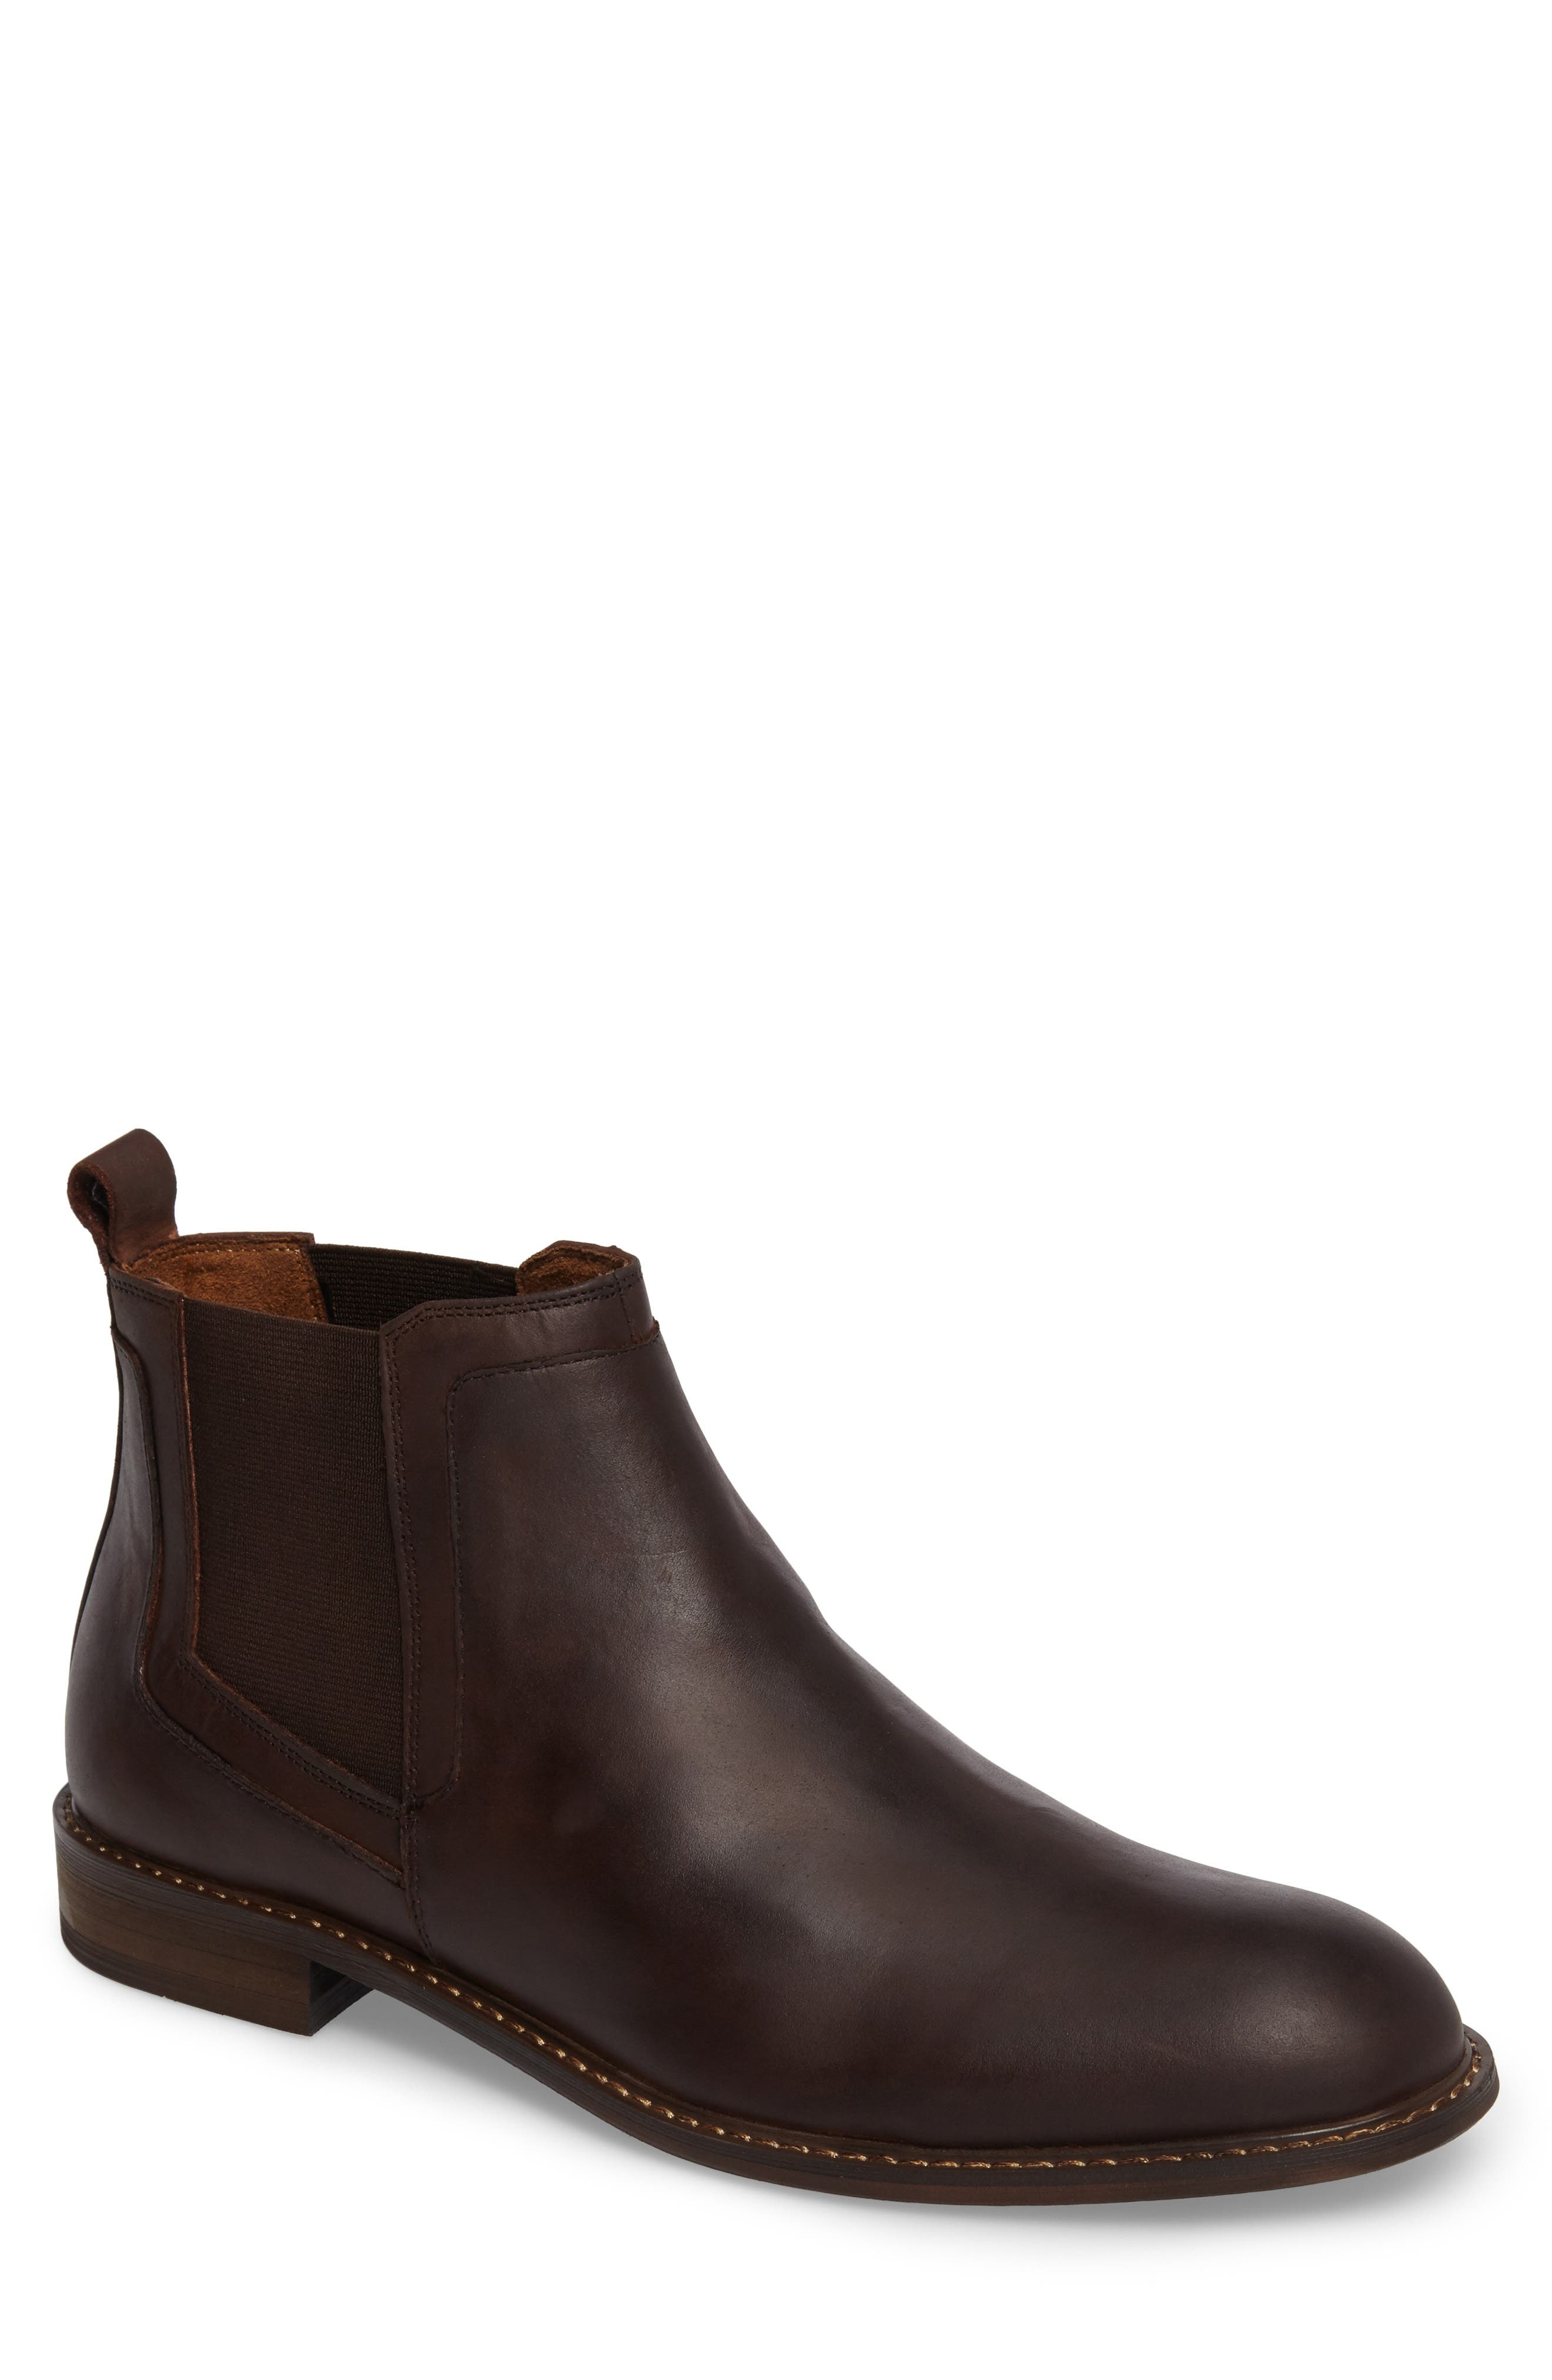 Chlesea Boot,                         Main,                         color, Brown Leather